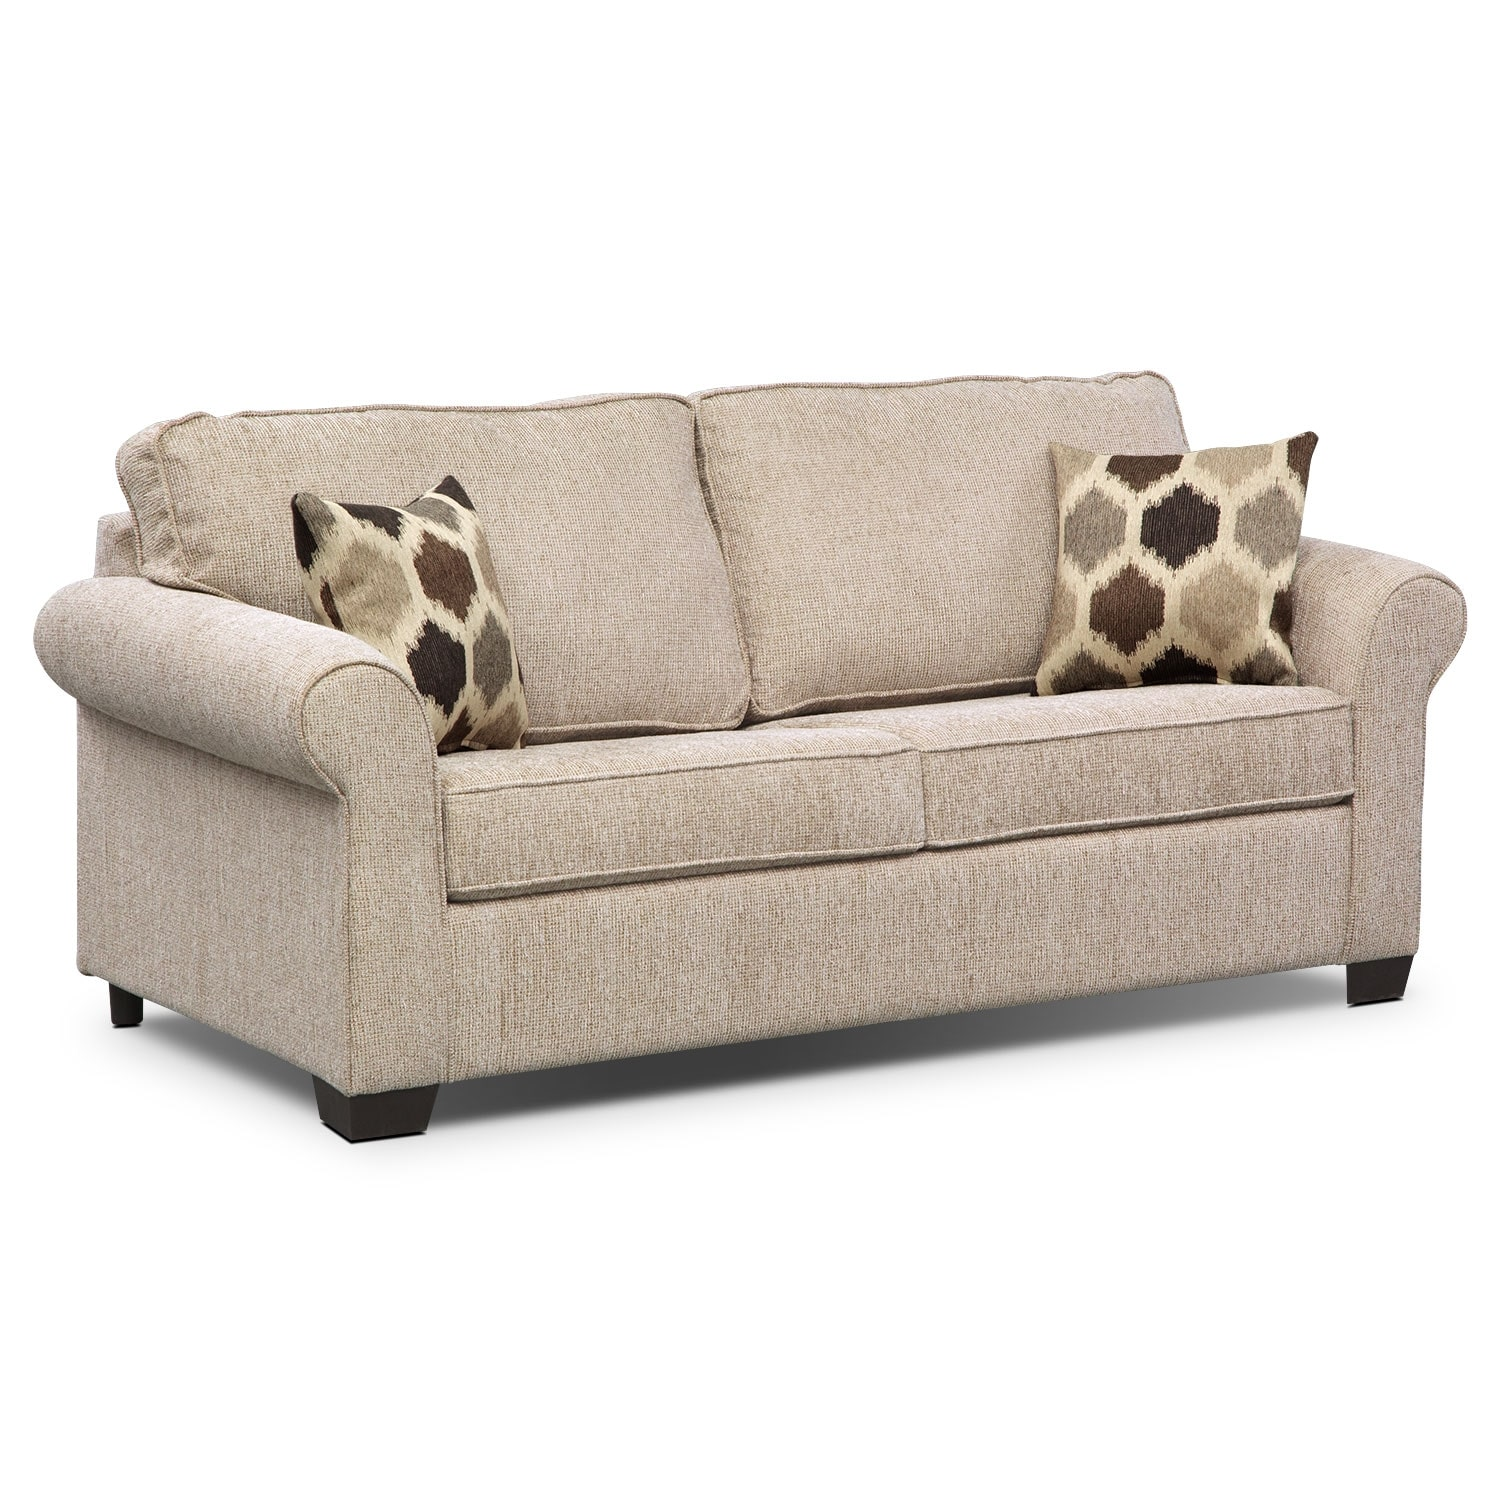 Living Room Furniture - Fletcher Full Memory Foam Sleeper Sofa